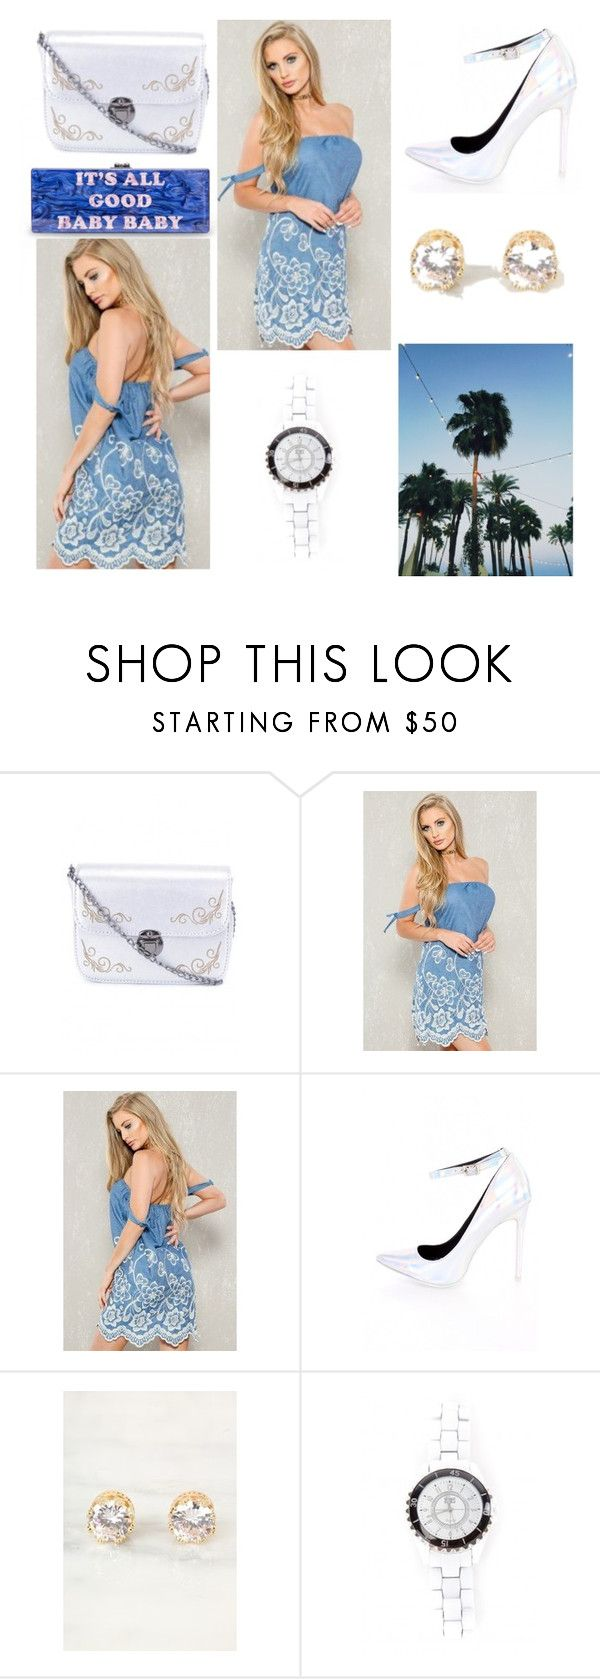 """The Good Life"" by amiclubwear ❤ liked on Polyvore featuring crossbodybag, diamondearrings, amiclubwear and denimfloraldress"